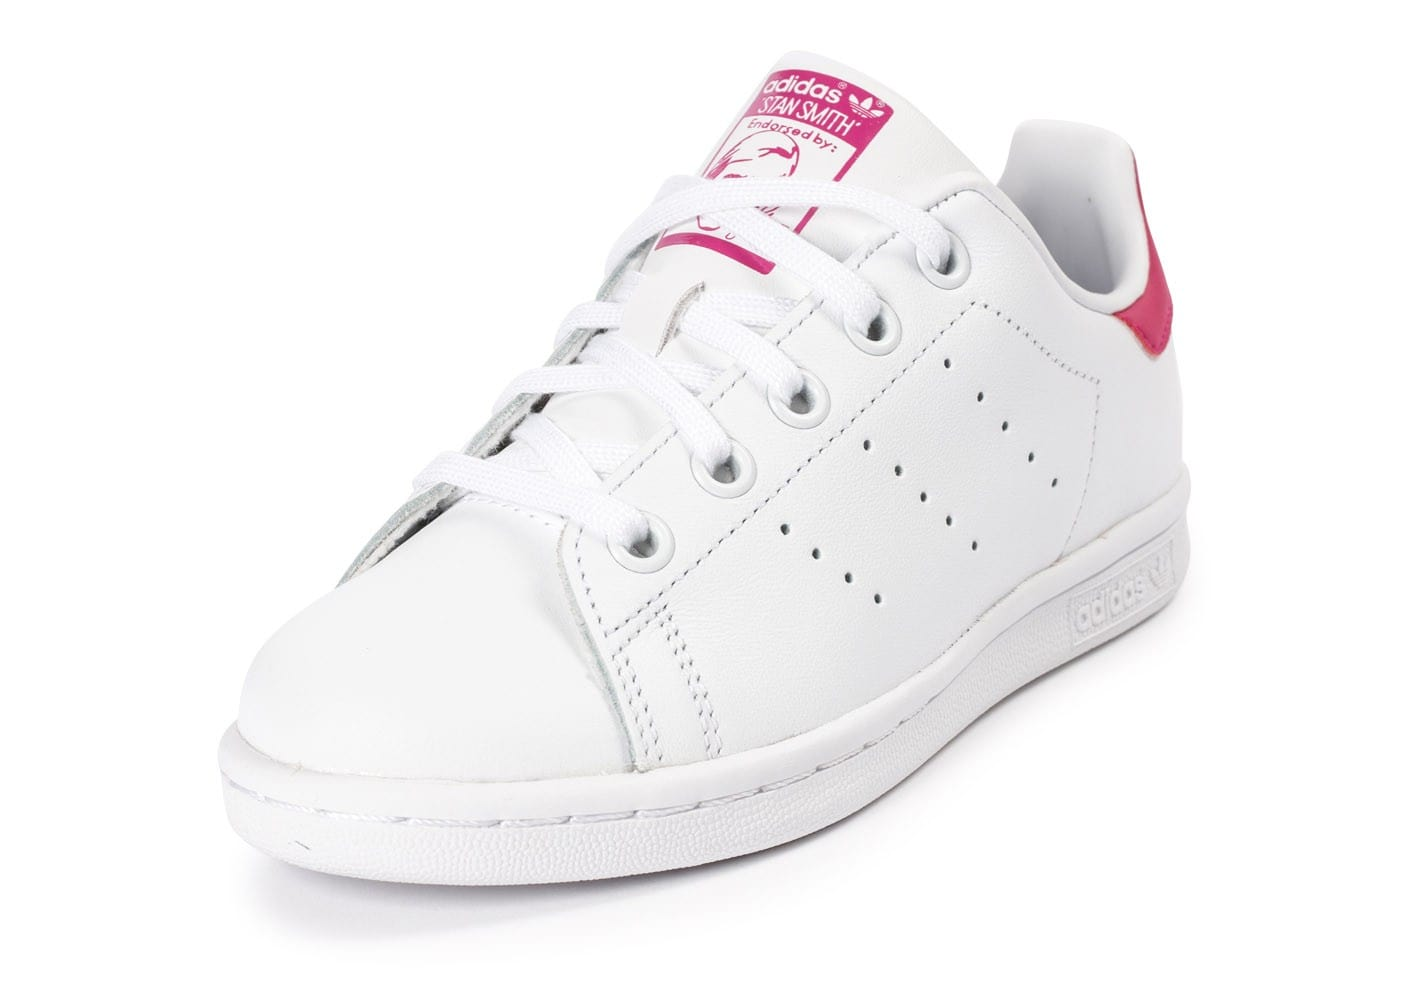 adidas stan smith enfant blanche et rose chaussures adidas chausport. Black Bedroom Furniture Sets. Home Design Ideas